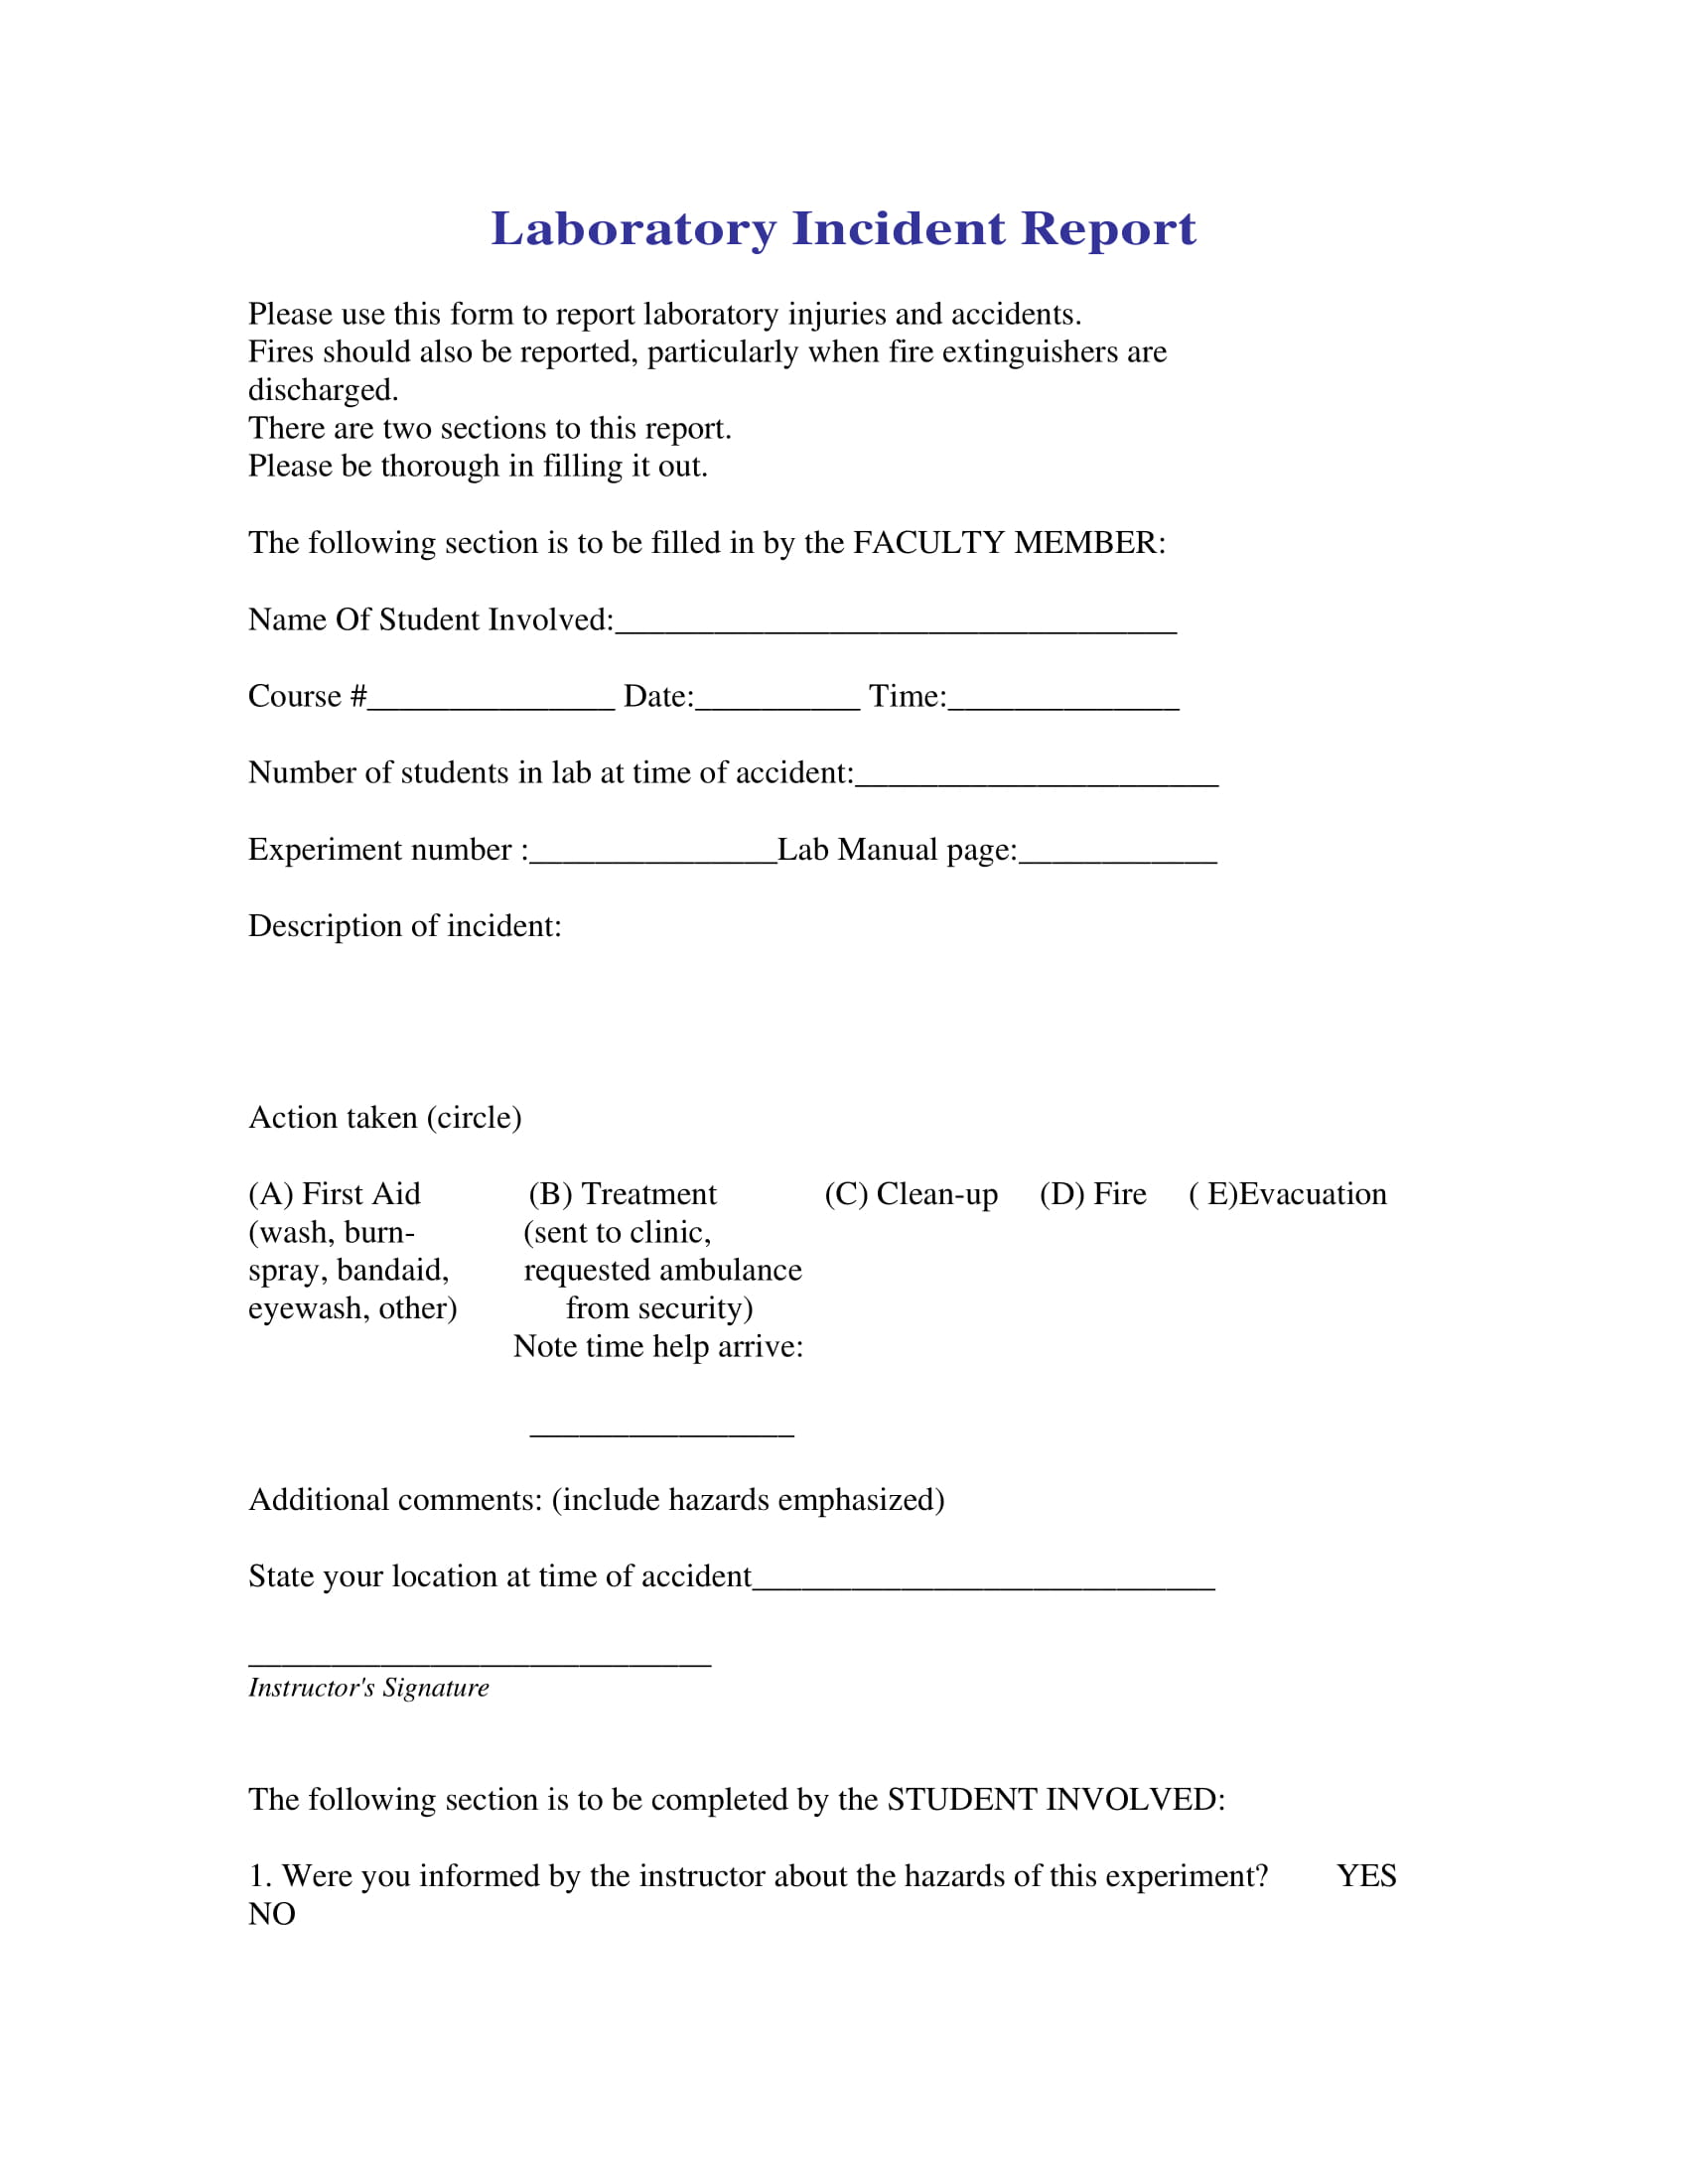 sample for laboratory incident report form 1